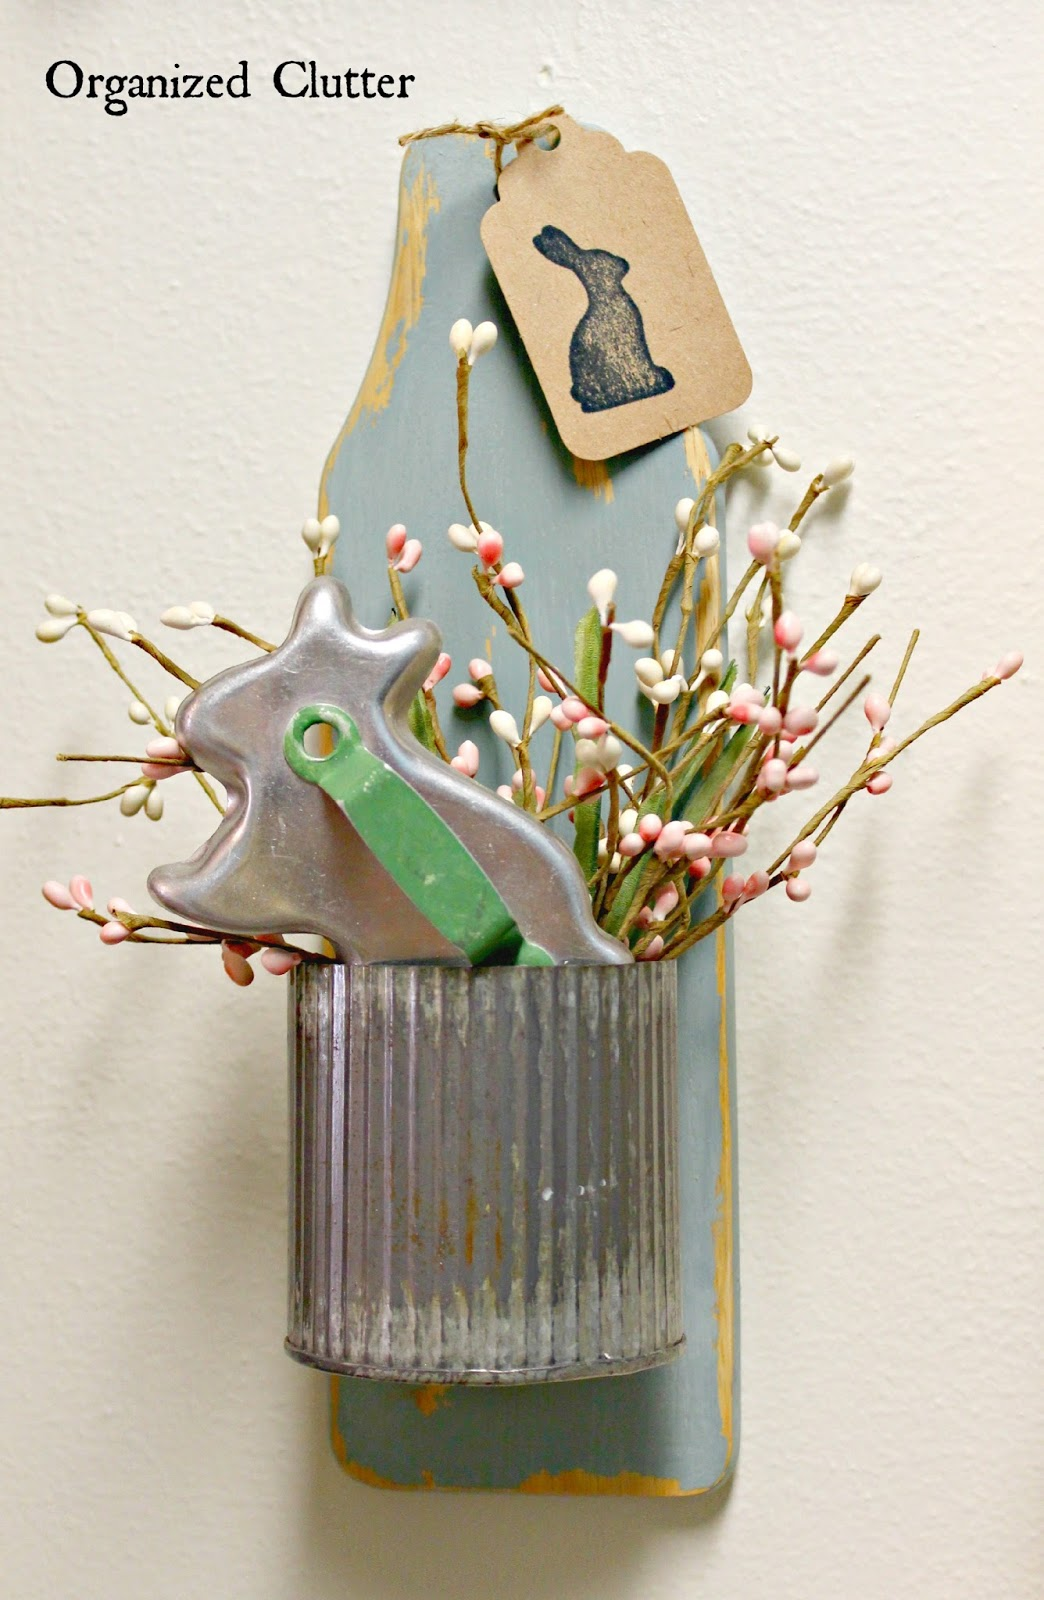 Easter Wall Decor From Thrift Shop Pieces www.organizedclutter.net